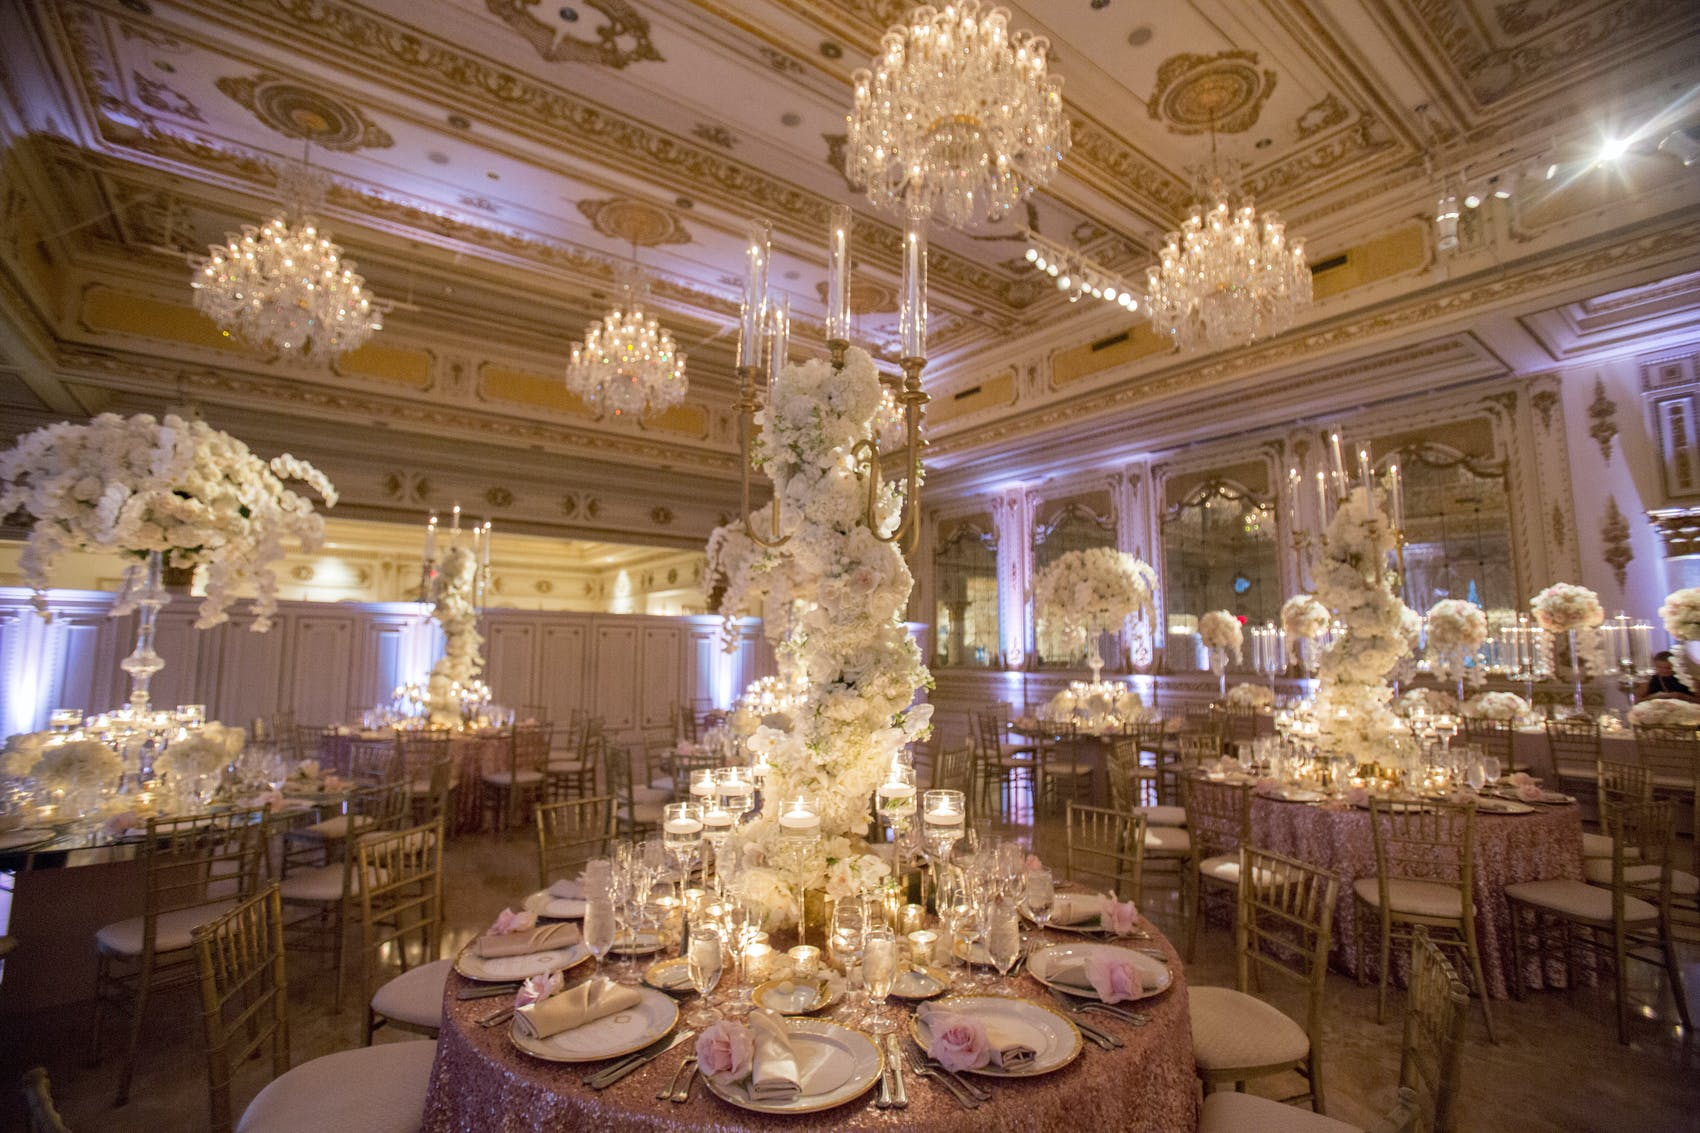 Tables with large large white bouquets in the middle that climb up to the chandeliers on the ceiling